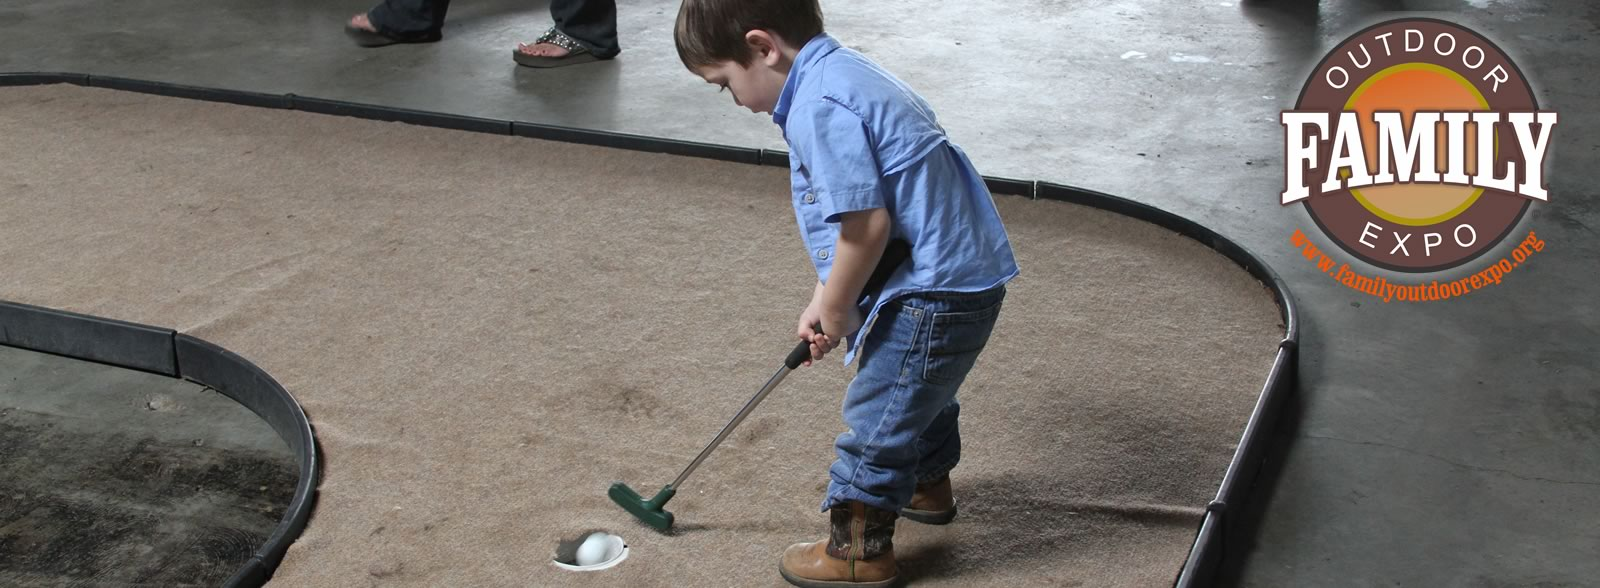 Putt Putt Golf at the Family Outdoor Expo